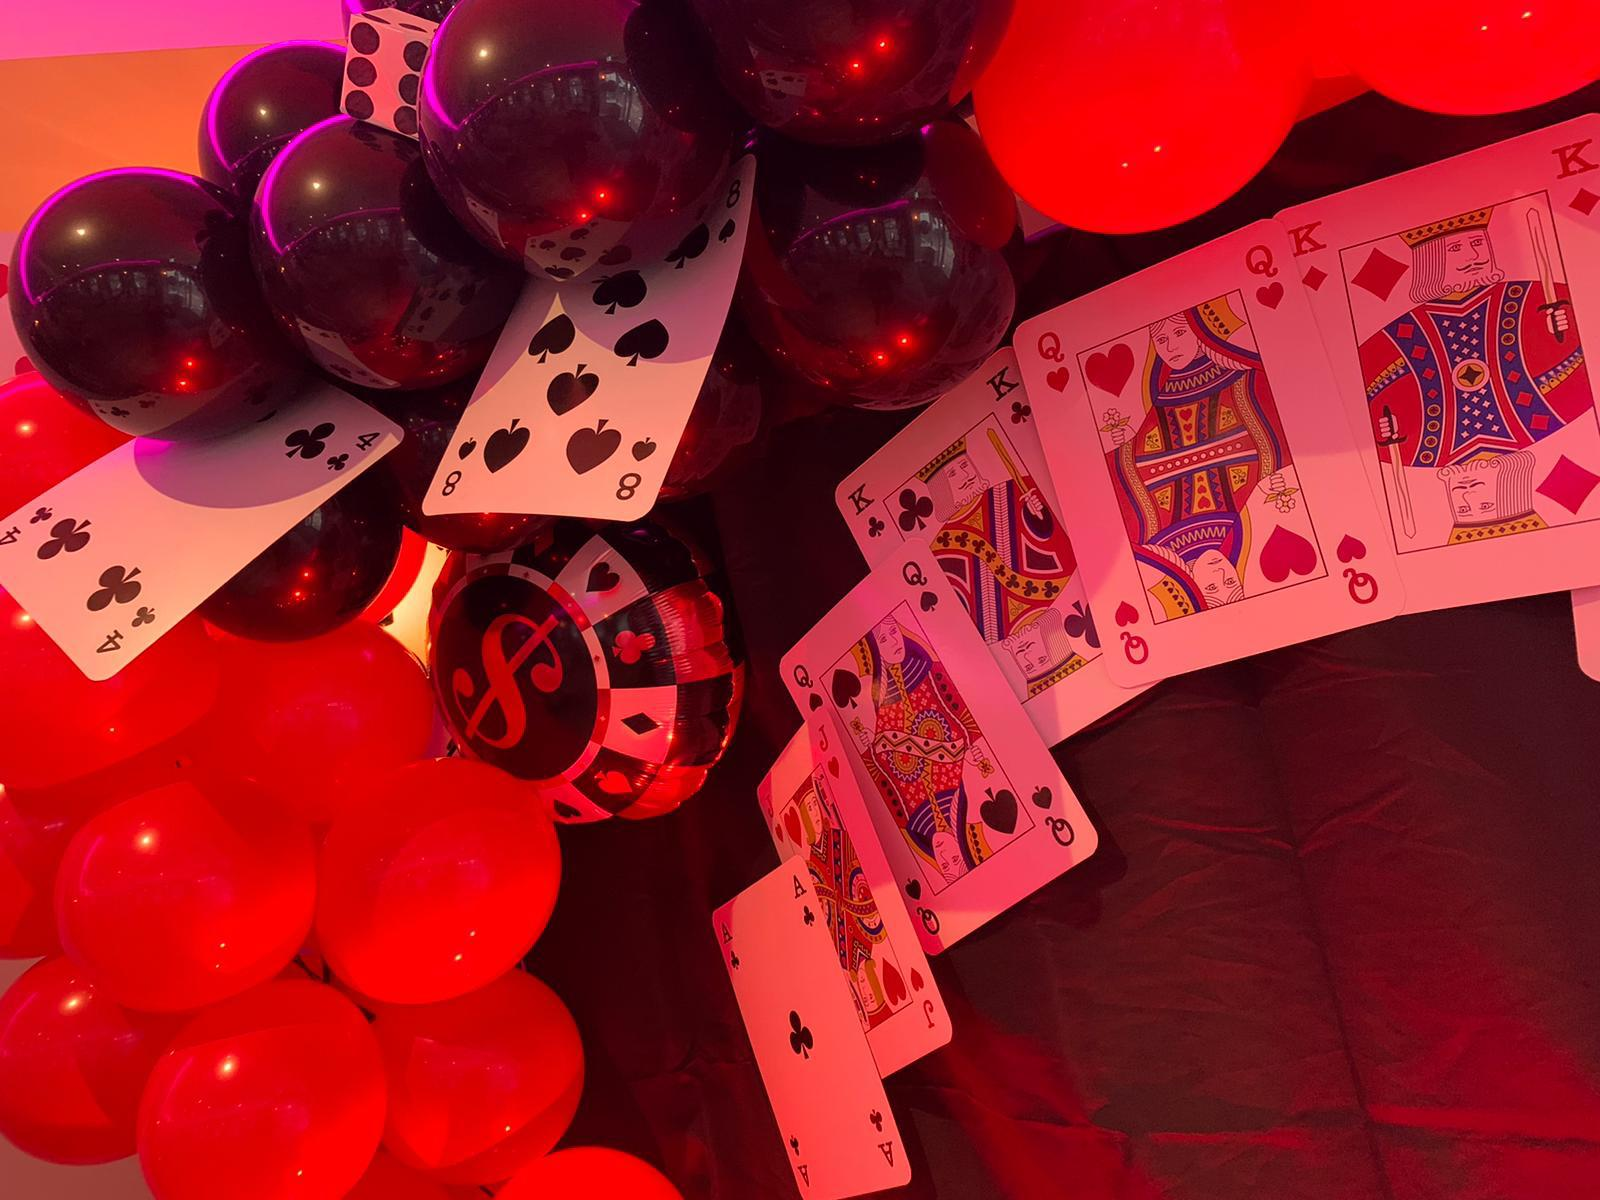 Our Latest 21st Birthday Function (casino themed!)